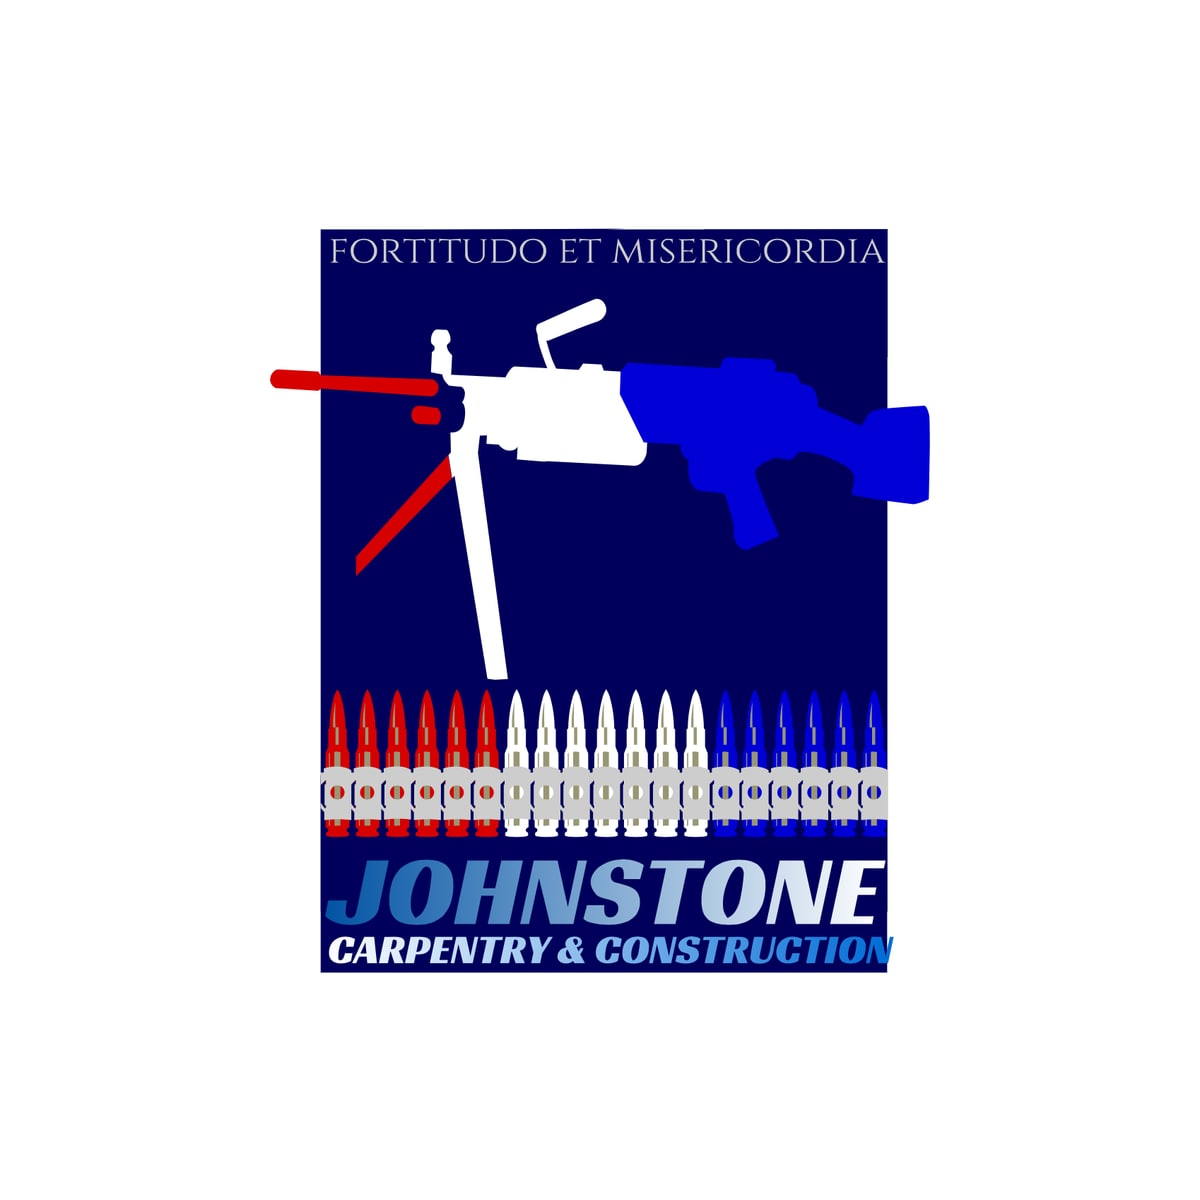 Johnstone Carpentry & Construction